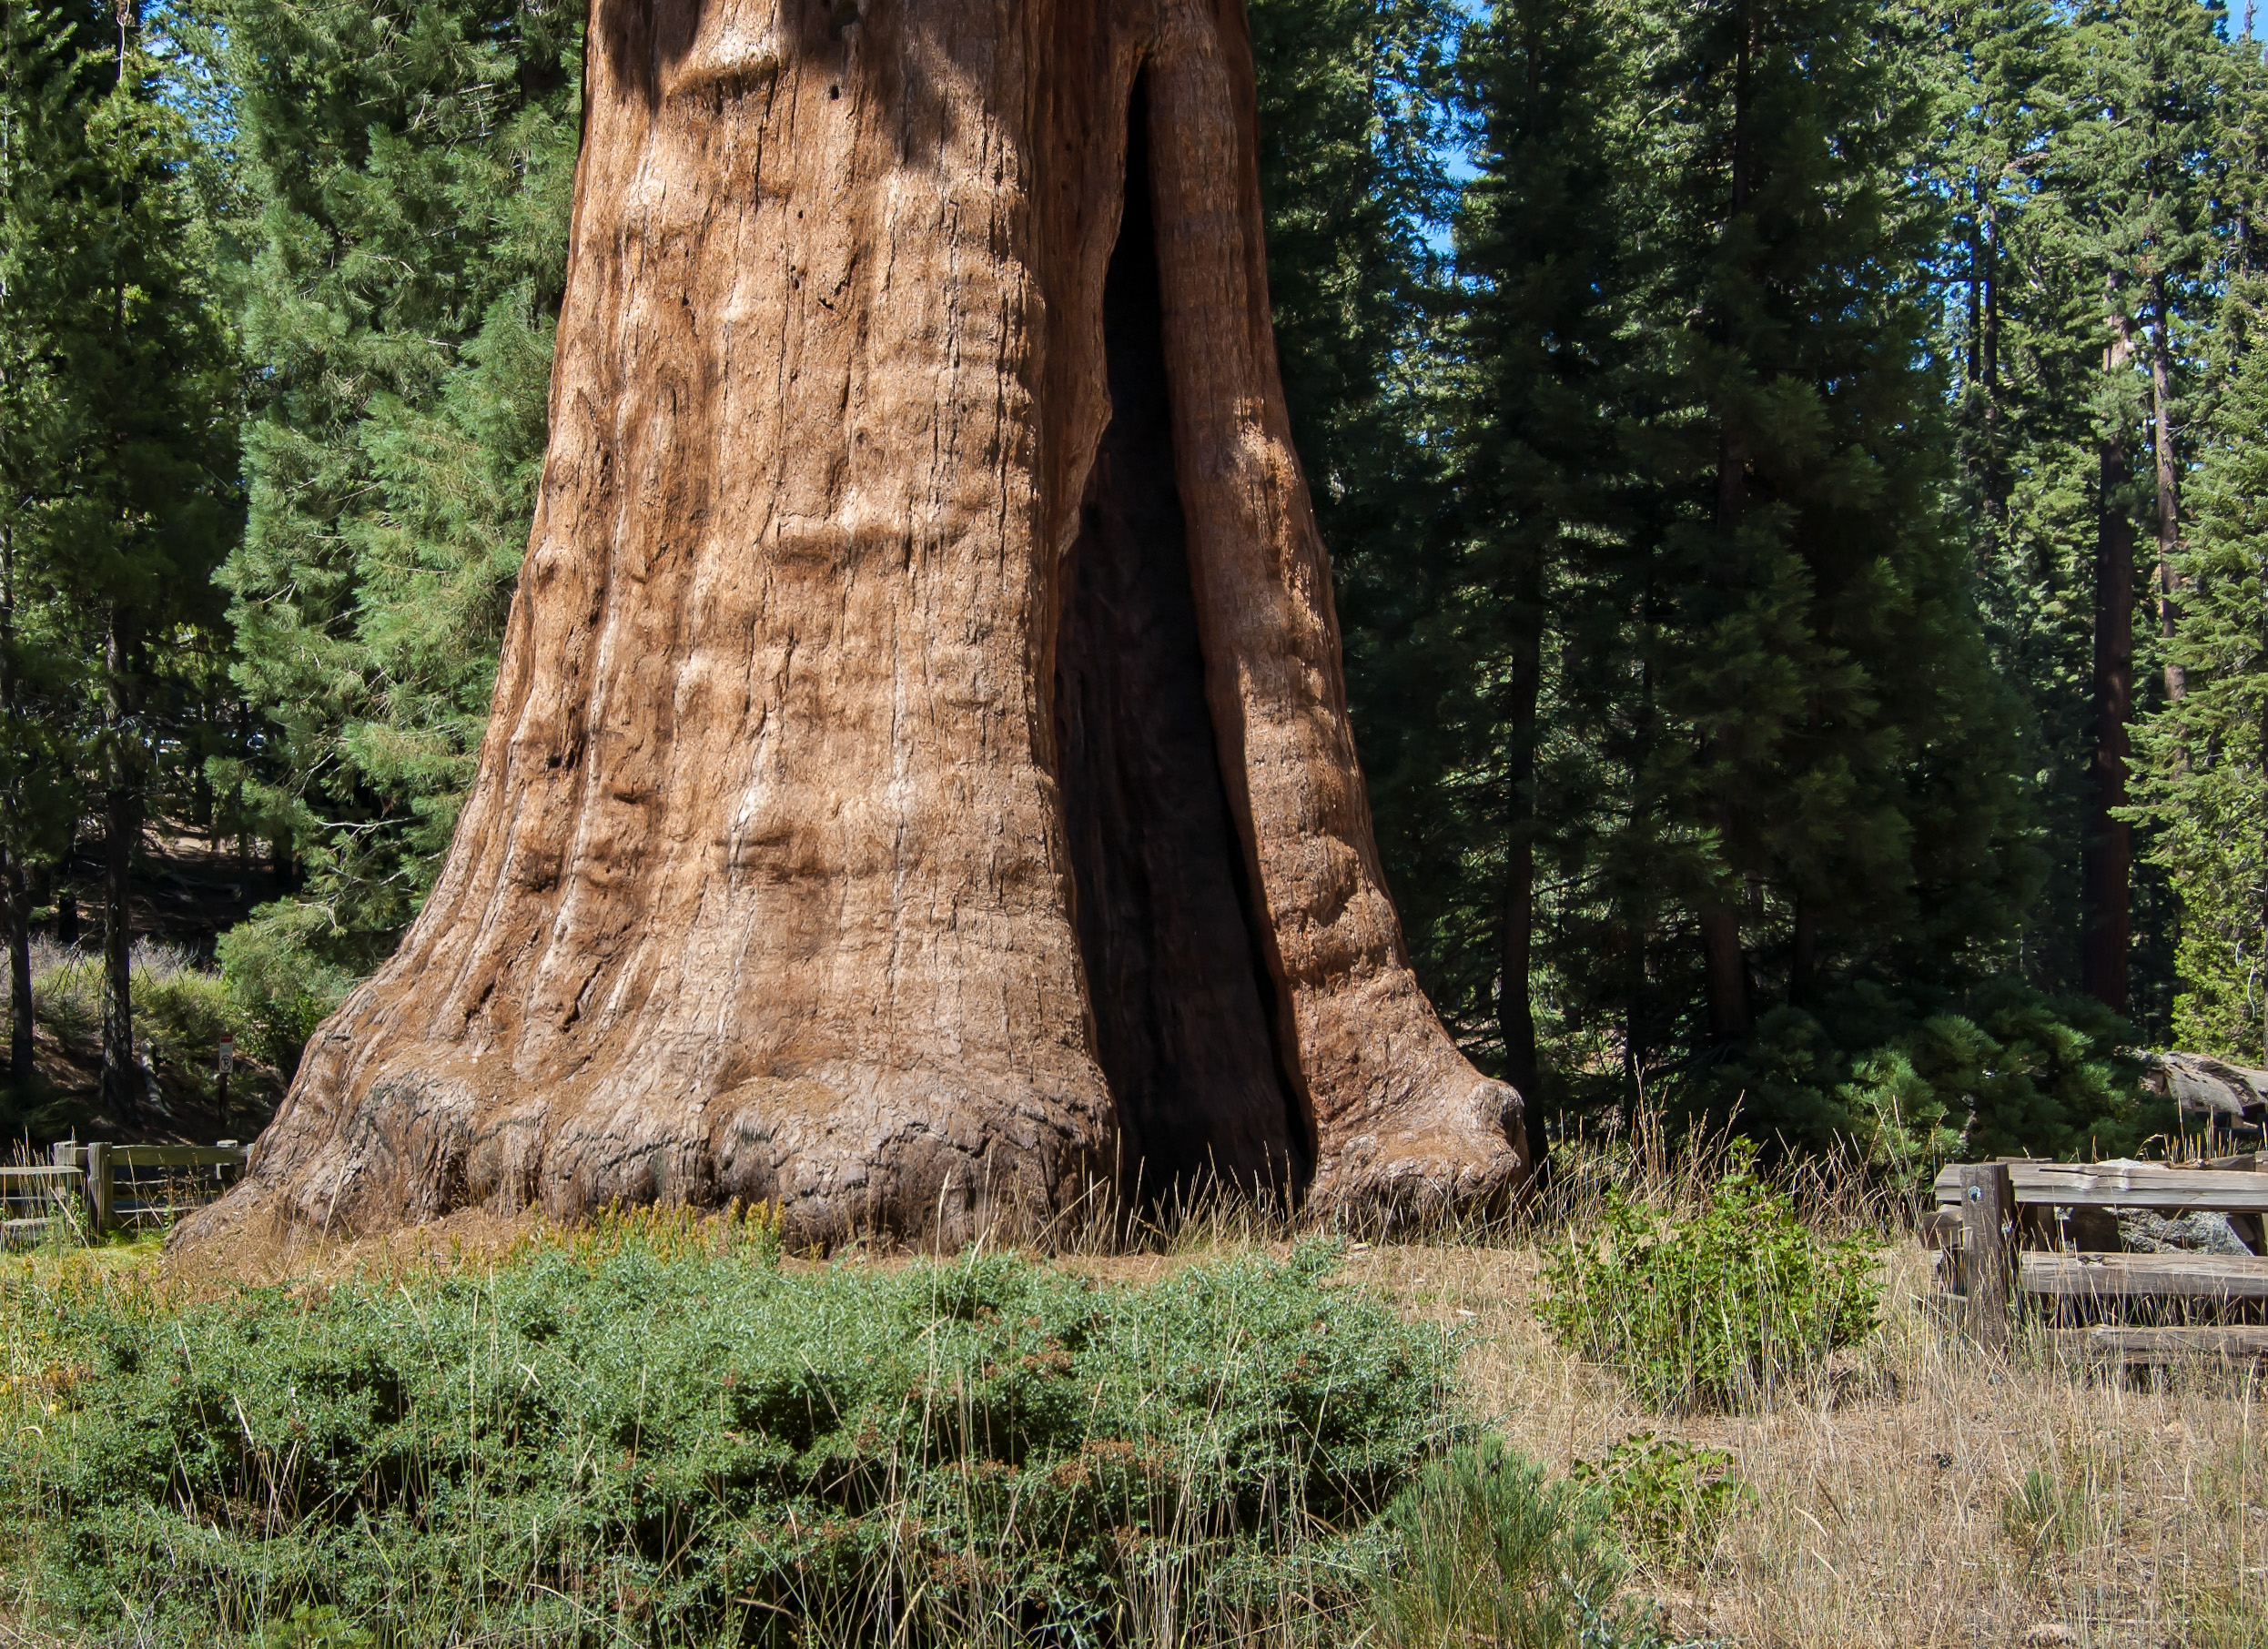 free online personals in sequoia national park Sequoia national park and the giant sequoia trees book online or call us toll-free 8555845294.